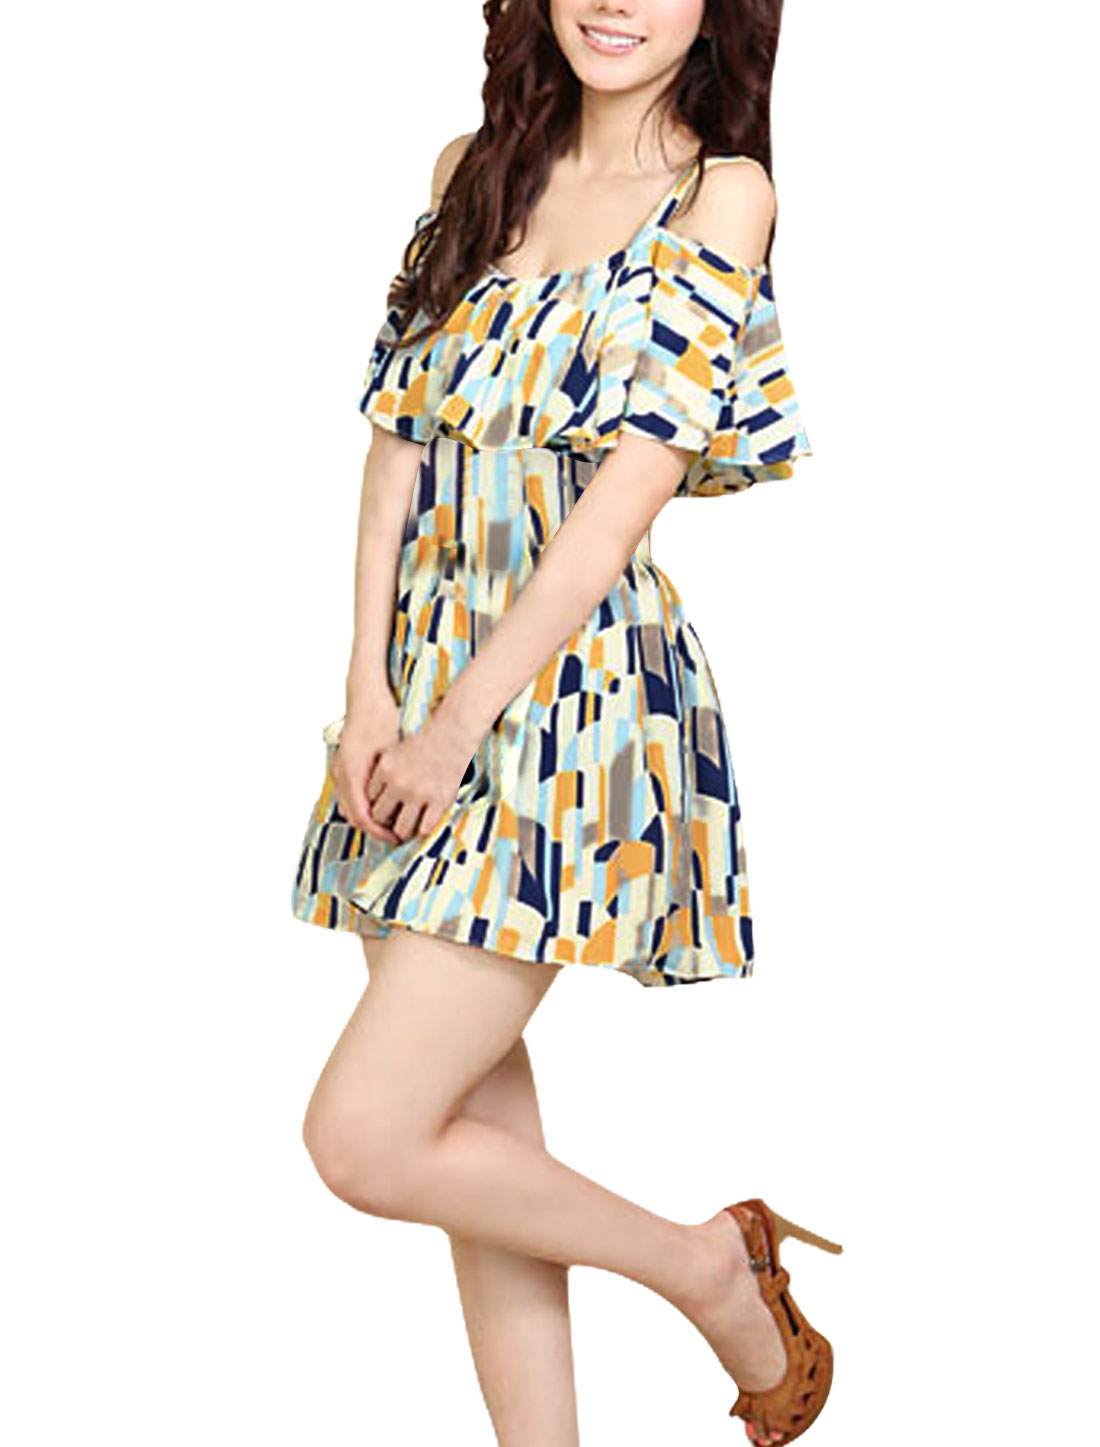 Sexy Ladies Casual Spaghetti Straps Flouncing Stretchy Geometric Prints Dress Yellow XS